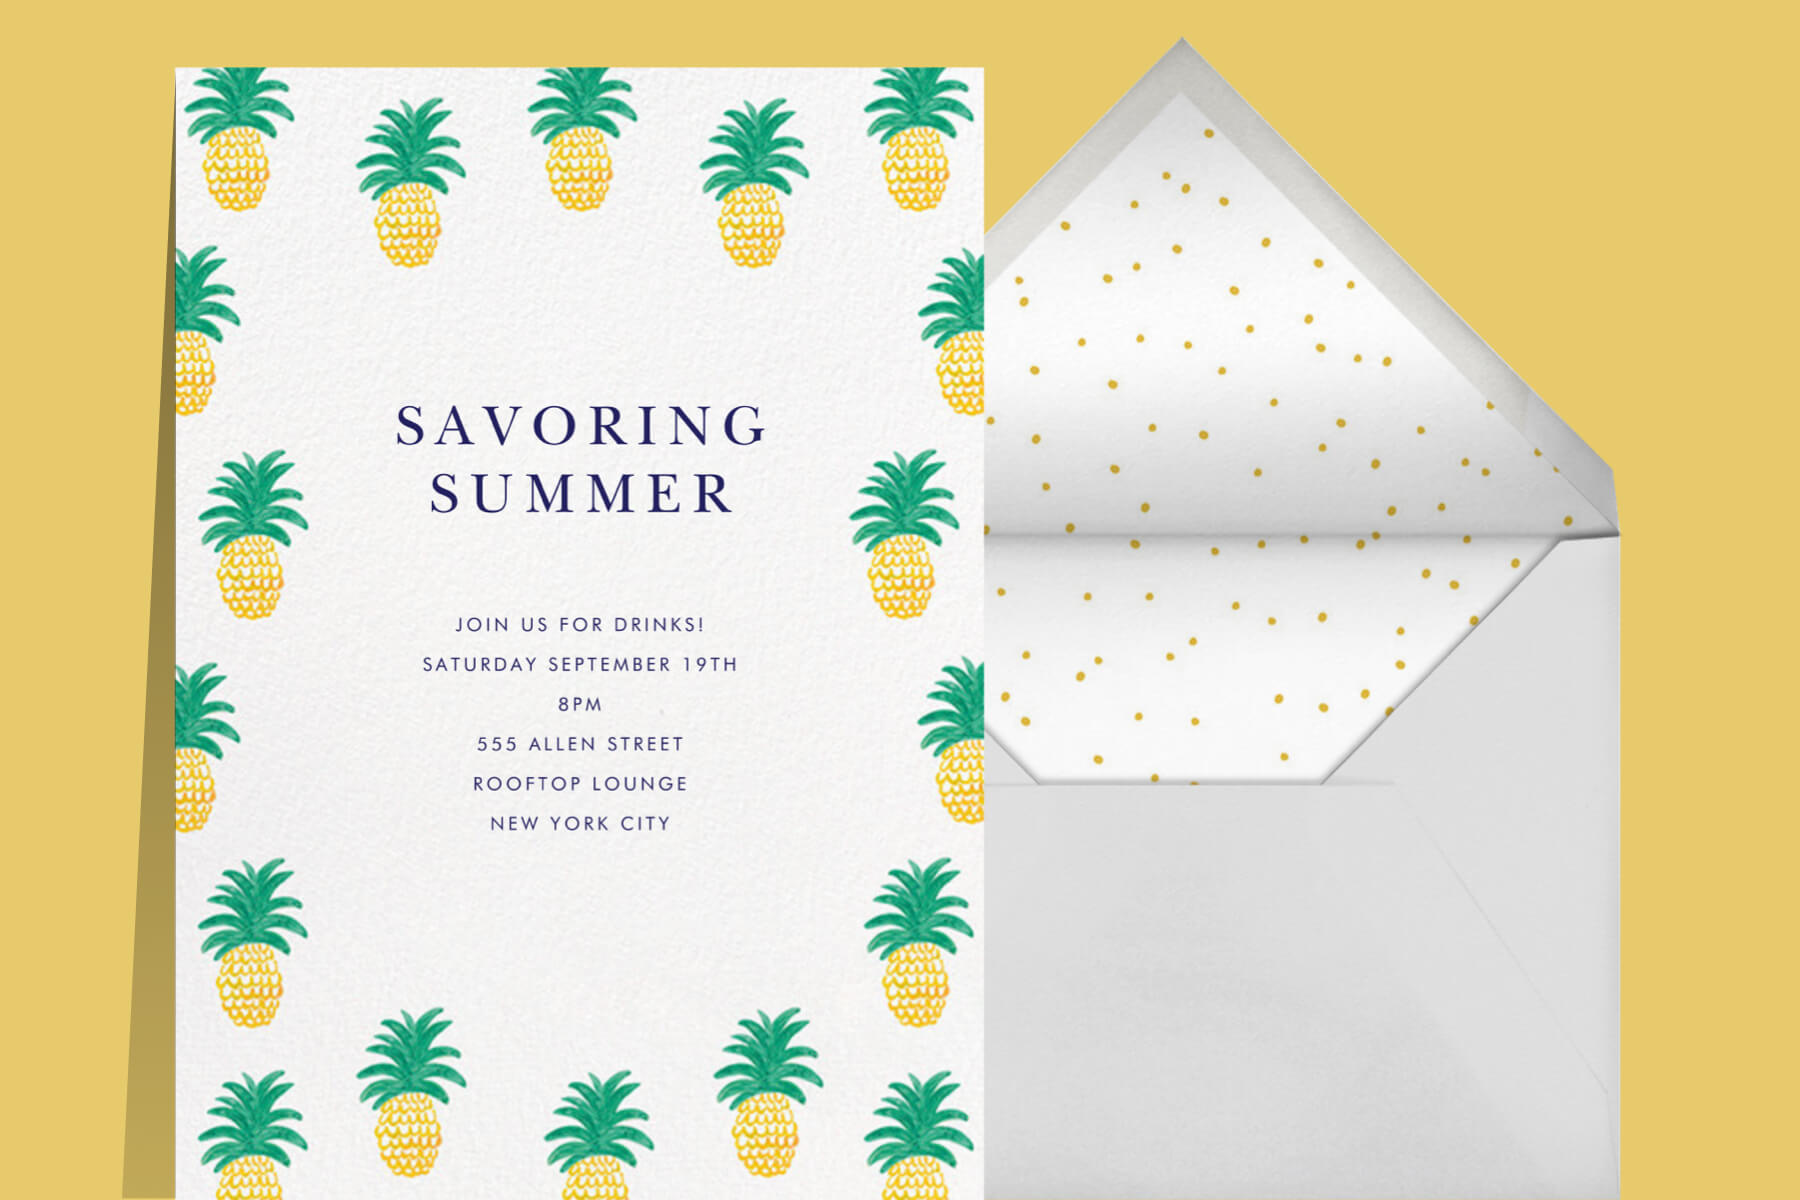 Party invitation with pineapple illustrations.